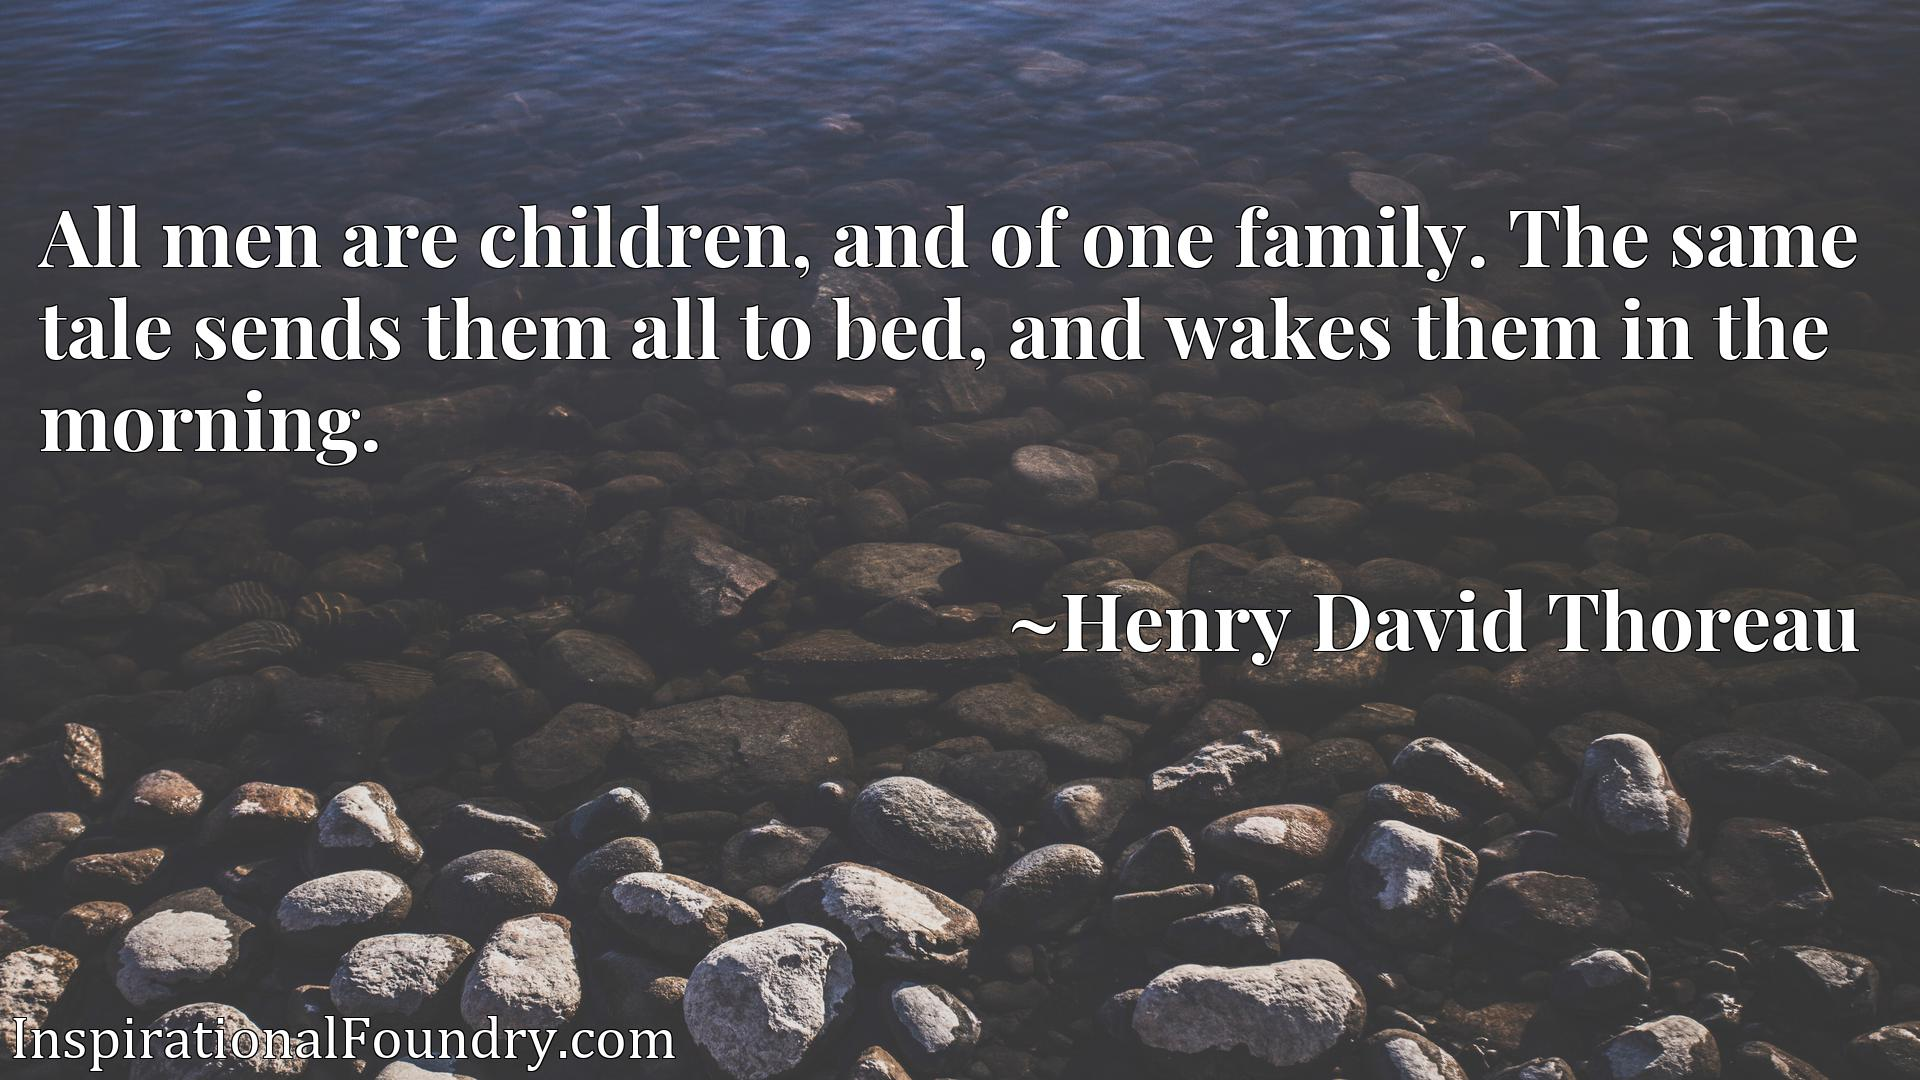 Quote Picture :All men are children, and of one family. The same tale sends them all to bed, and wakes them in the morning.